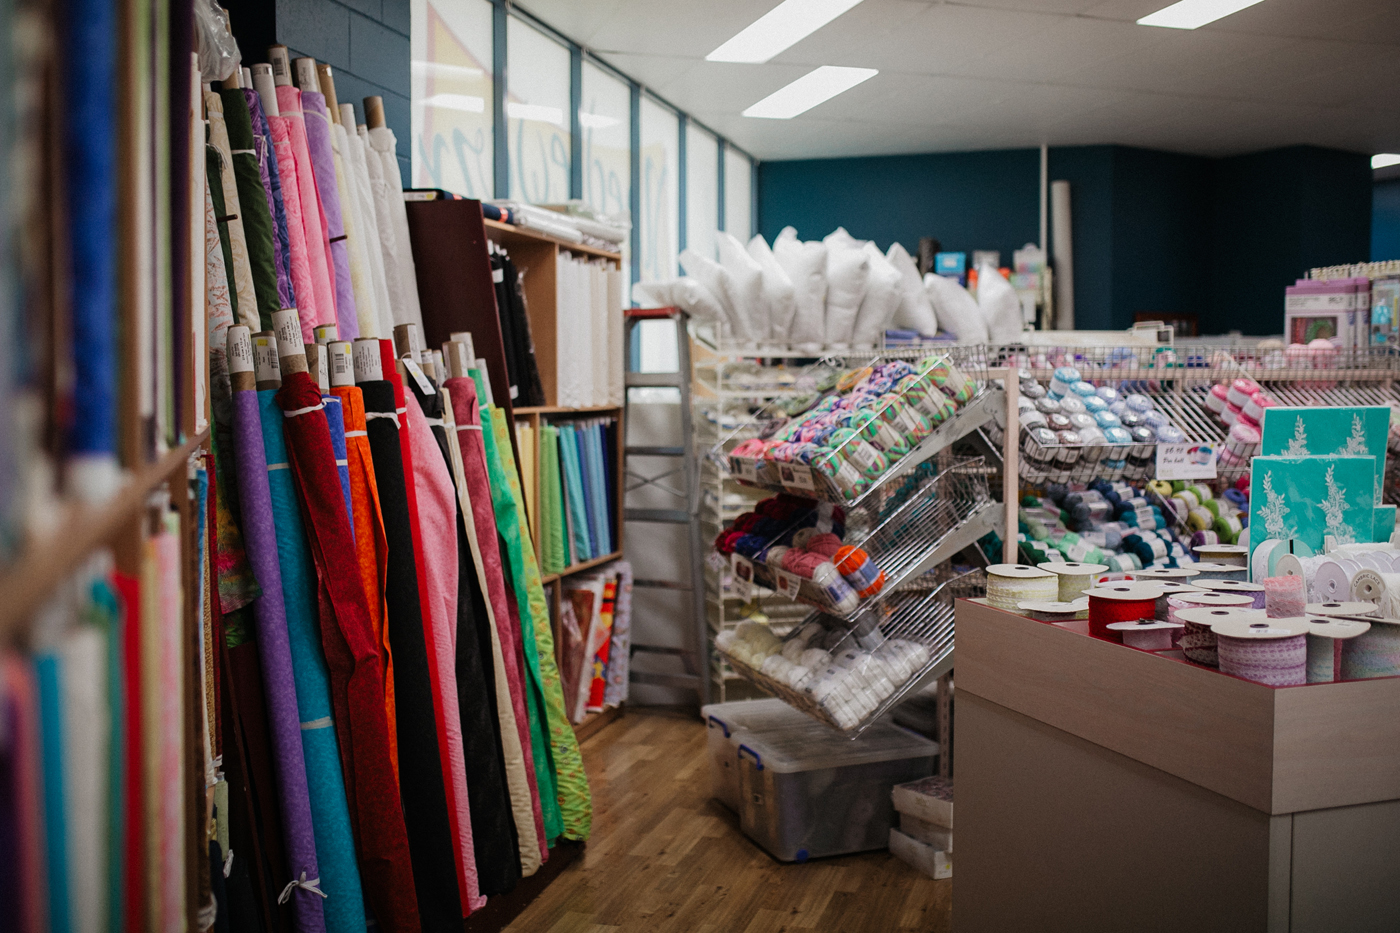 Needleworx store with rows of fabric and sewing material and wool